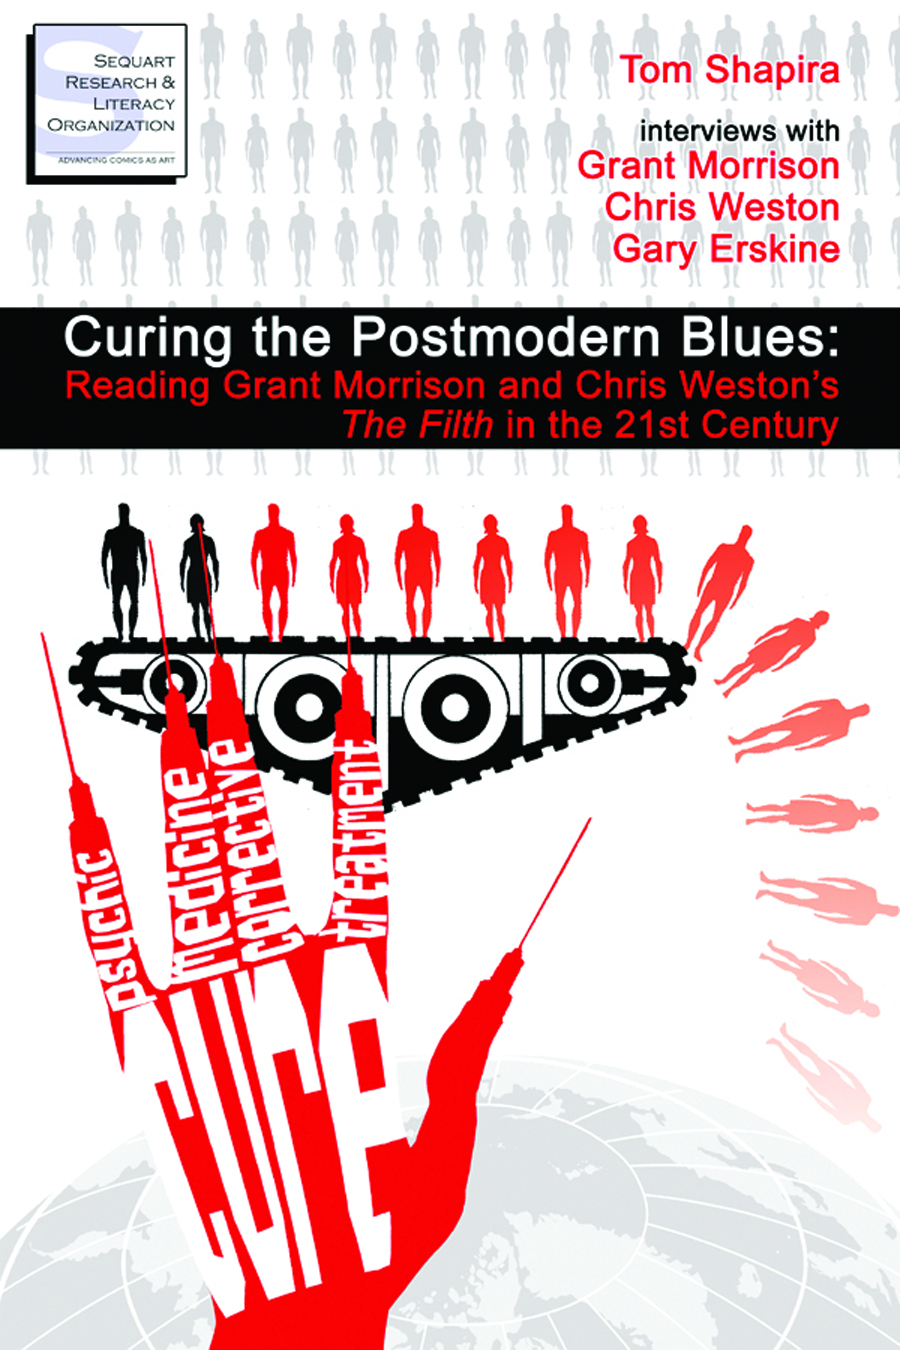 CURING POSTMODERN BLUES READING MORRISON & WESTON FILTH SC